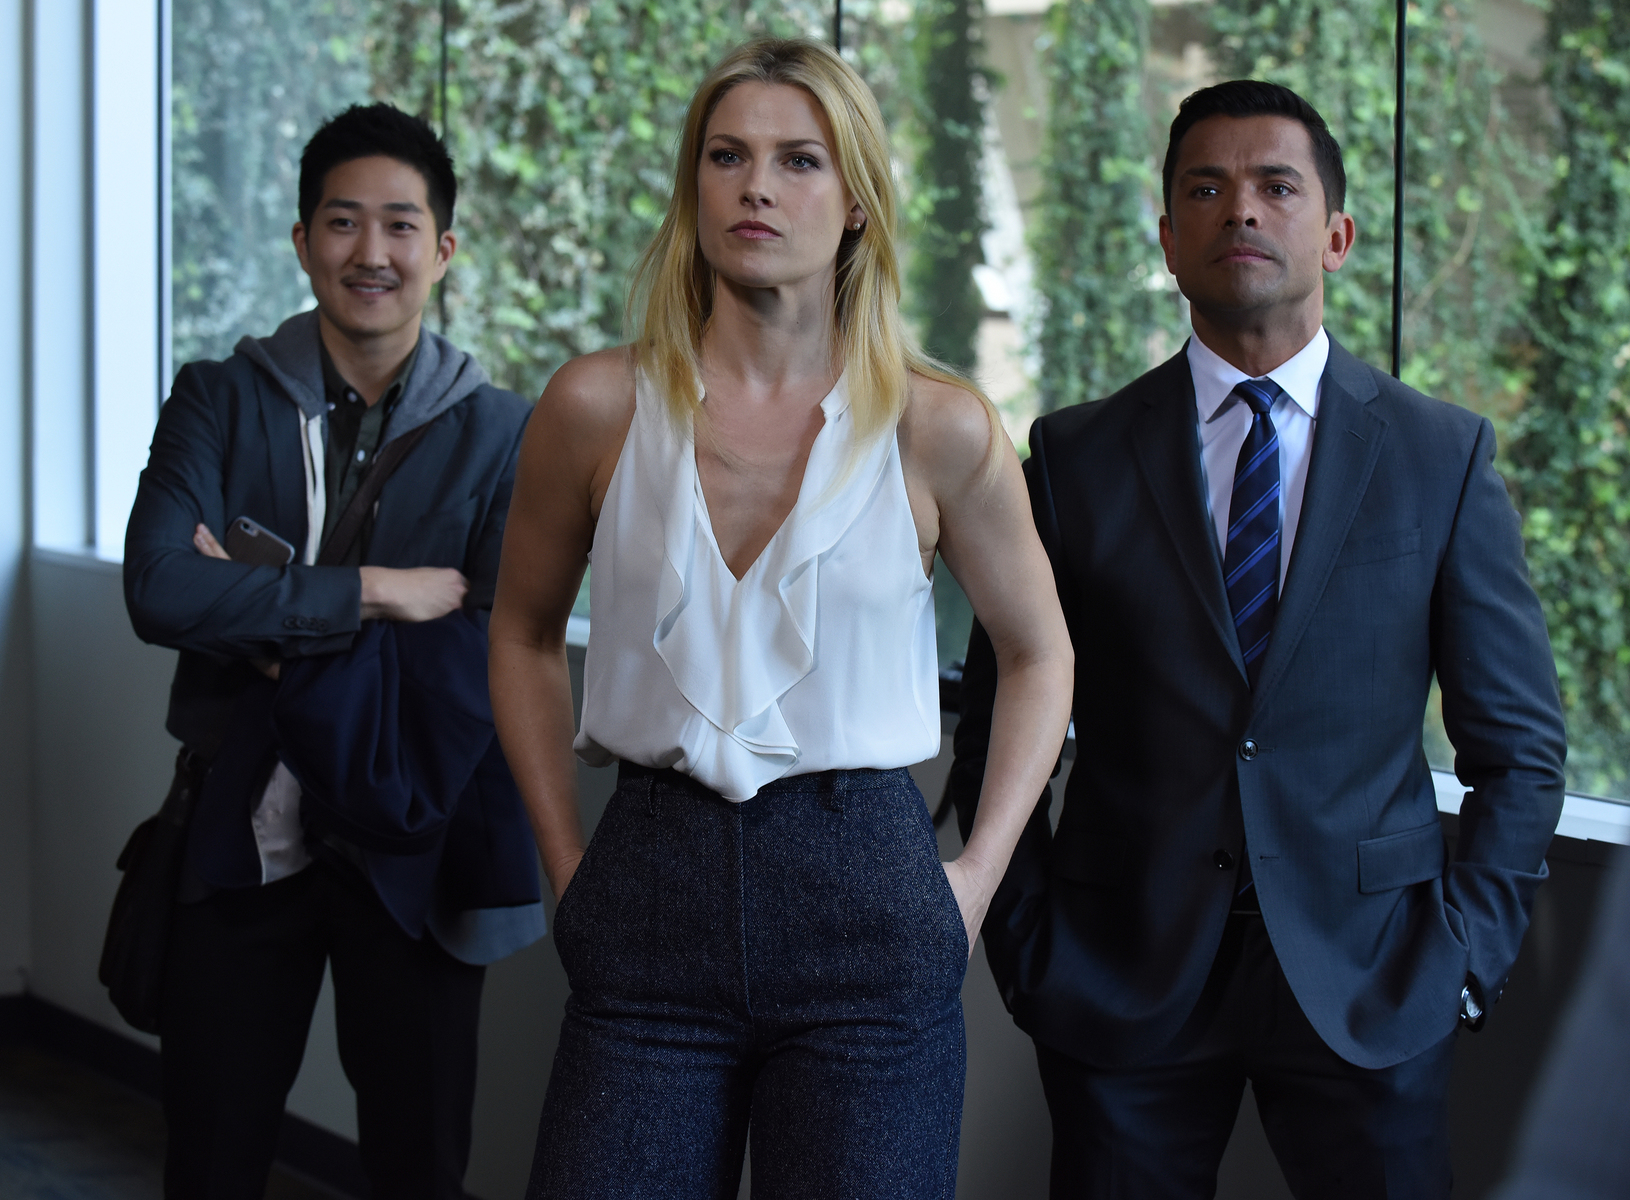 Ali Larter, Mark Consuelos, and Tim Jo in Pitch (2016)